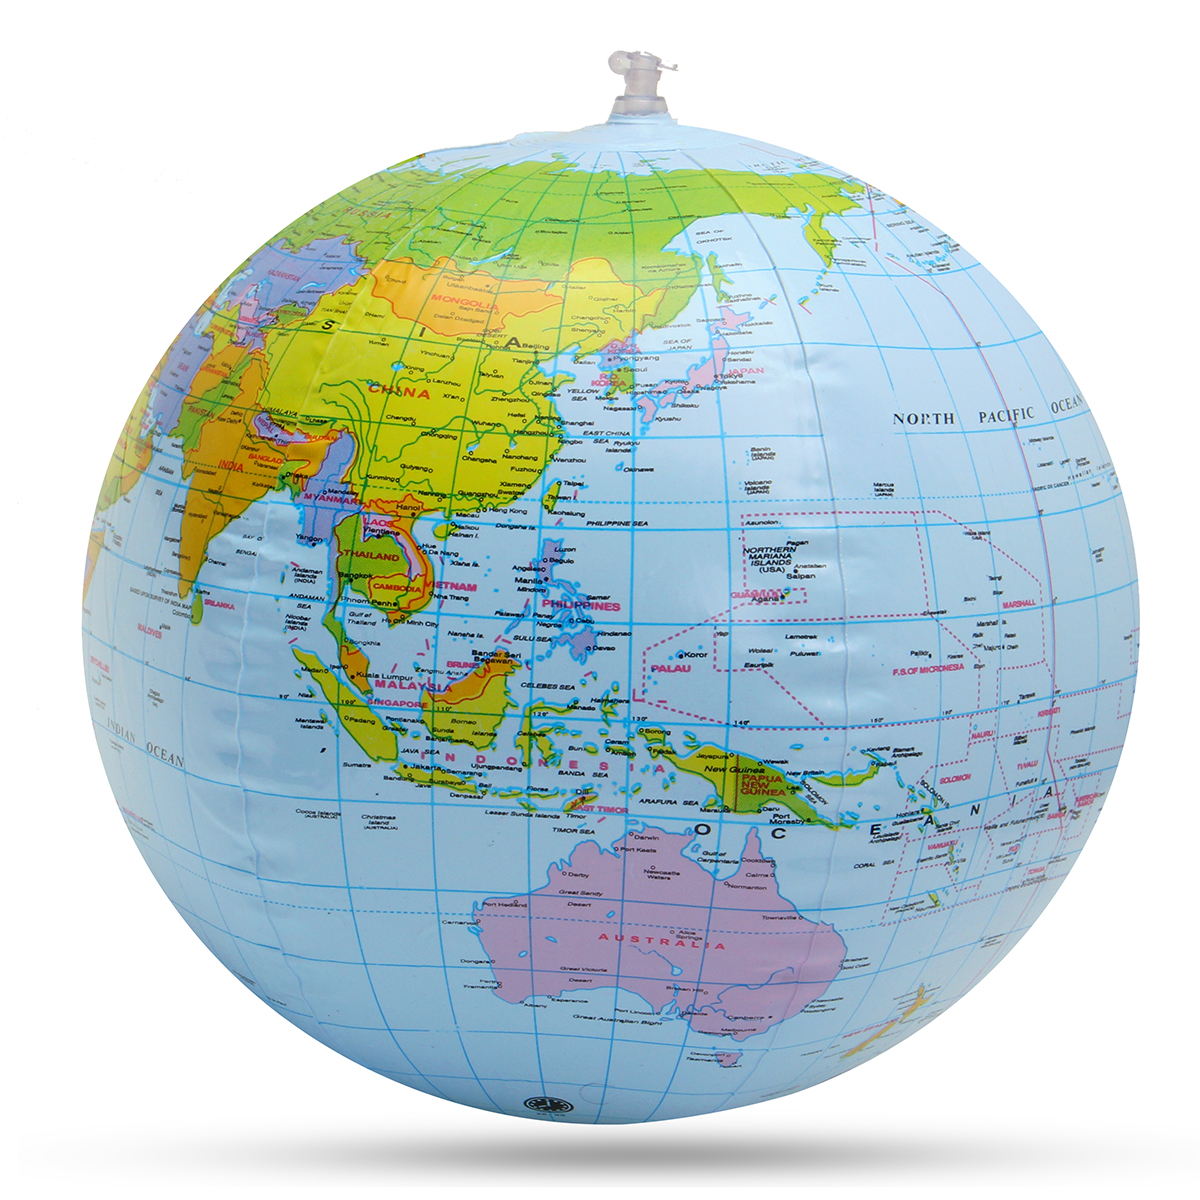 MIRUI Inflatable Globe World Earth Ocean Map Ball 30 Cm Geography Learning Educational Beach Ball Kids Toy Home OfficeDecoration